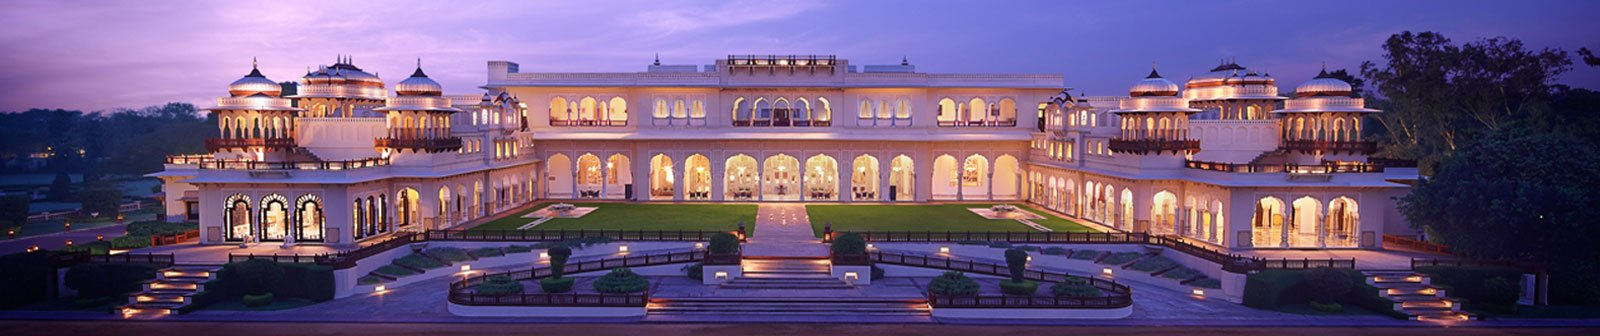 Wedding Venues in Chandigarh